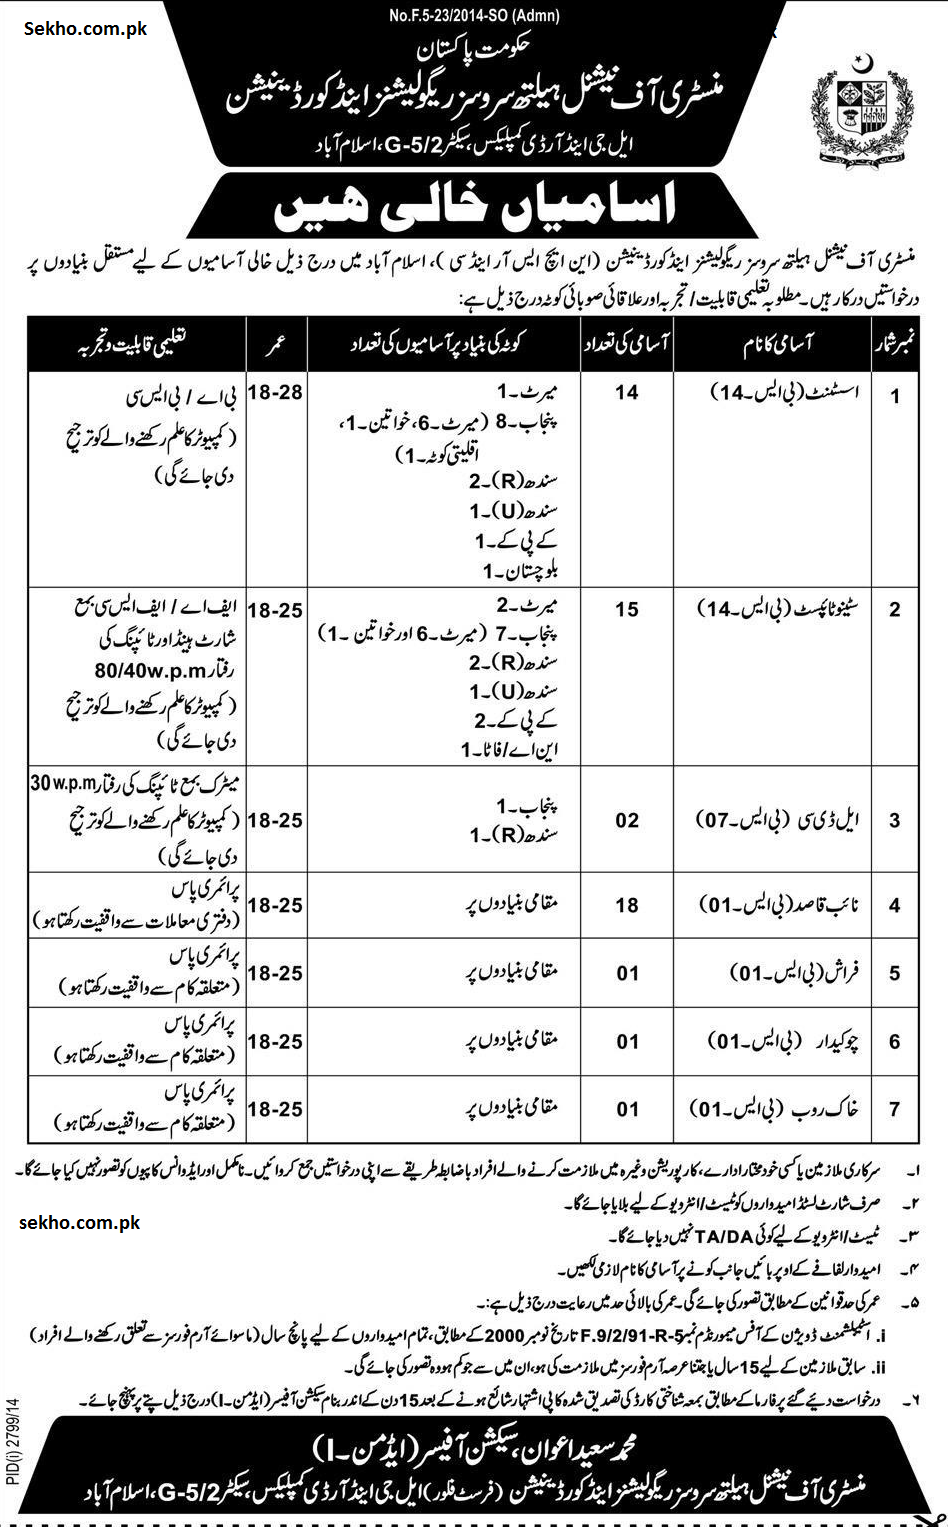 Ministry Of National Health Services Islamabad Jobs 2014 Form Date